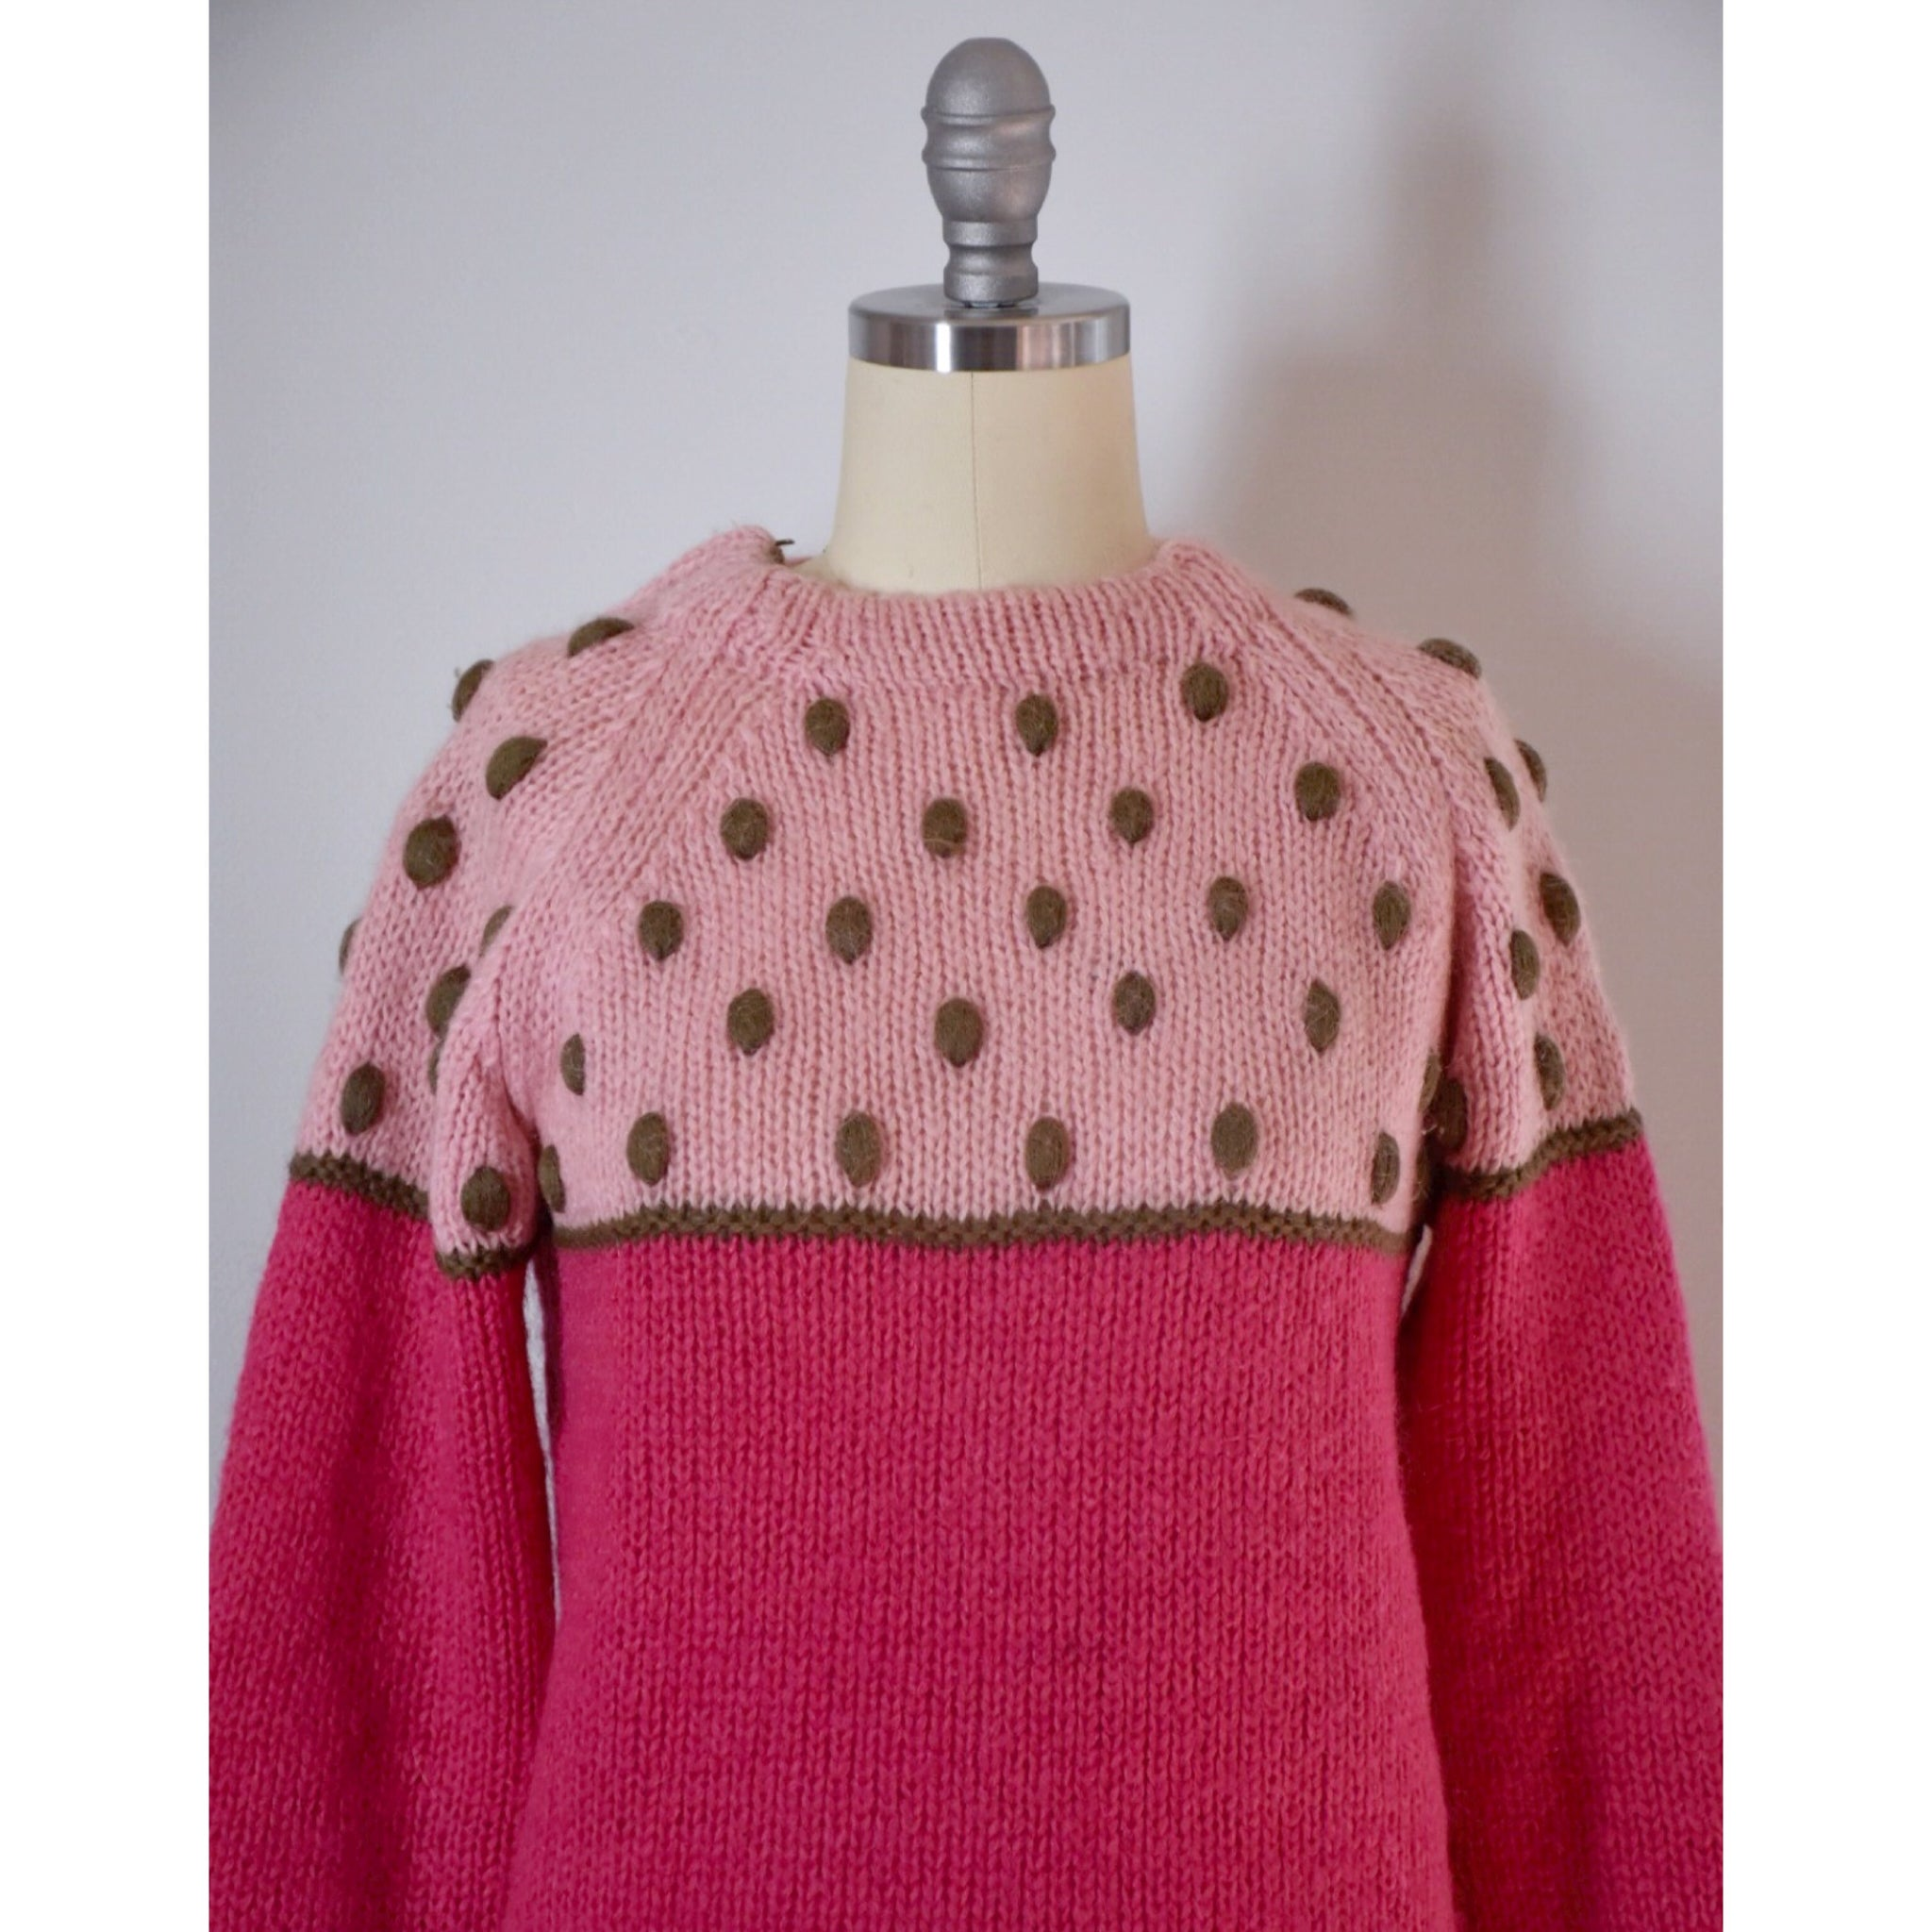 60s Evan Picone Sweater